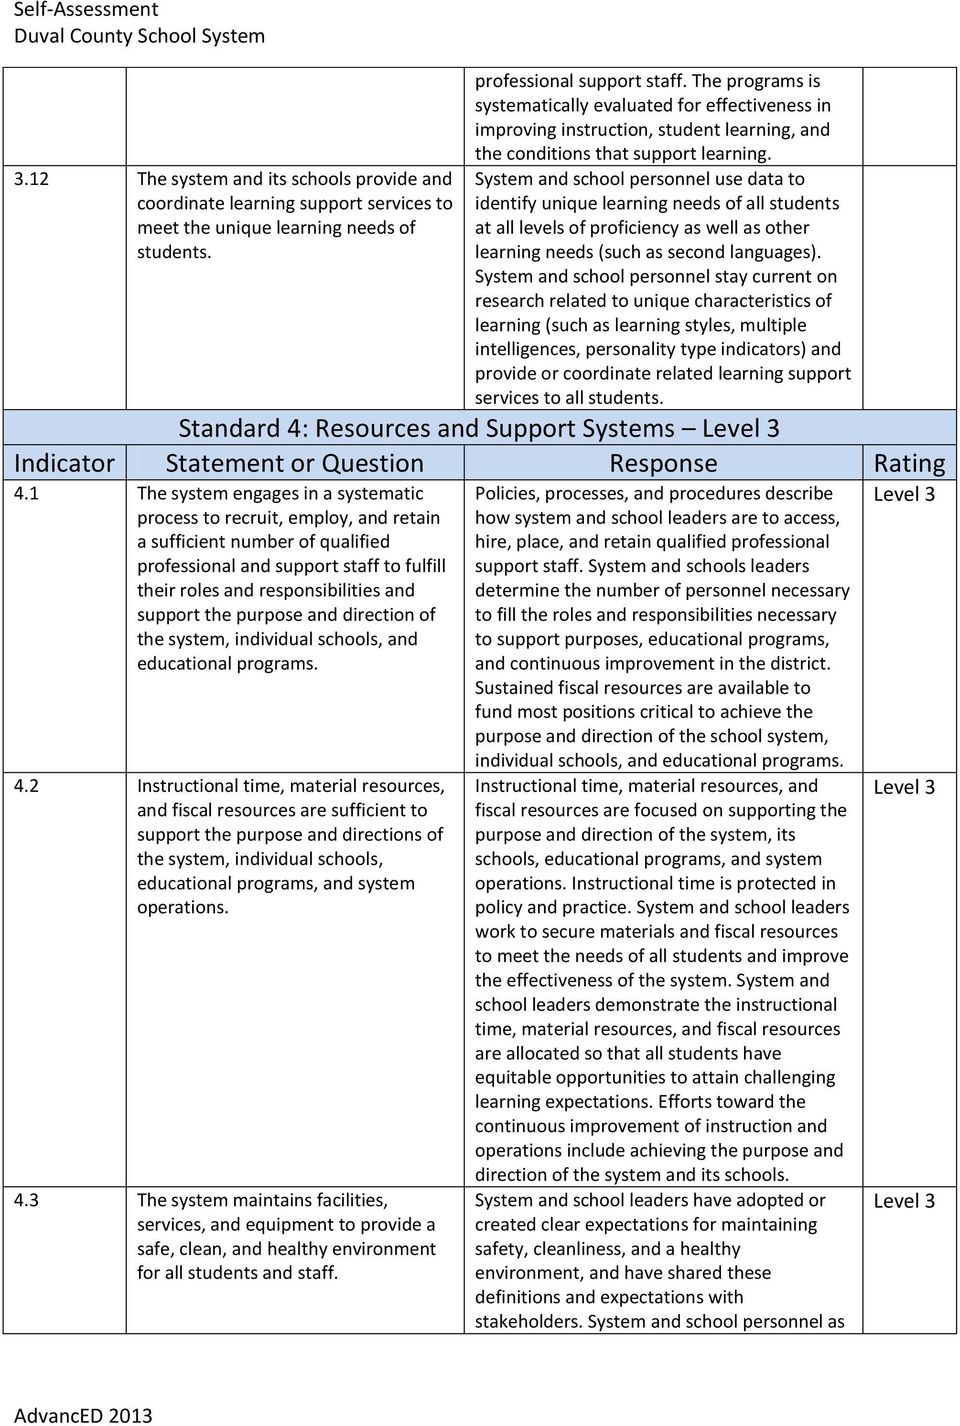 System and school personnel use data to identify unique learning needs of all students at all levels of proficiency as well as other learning needs (such as second languages).